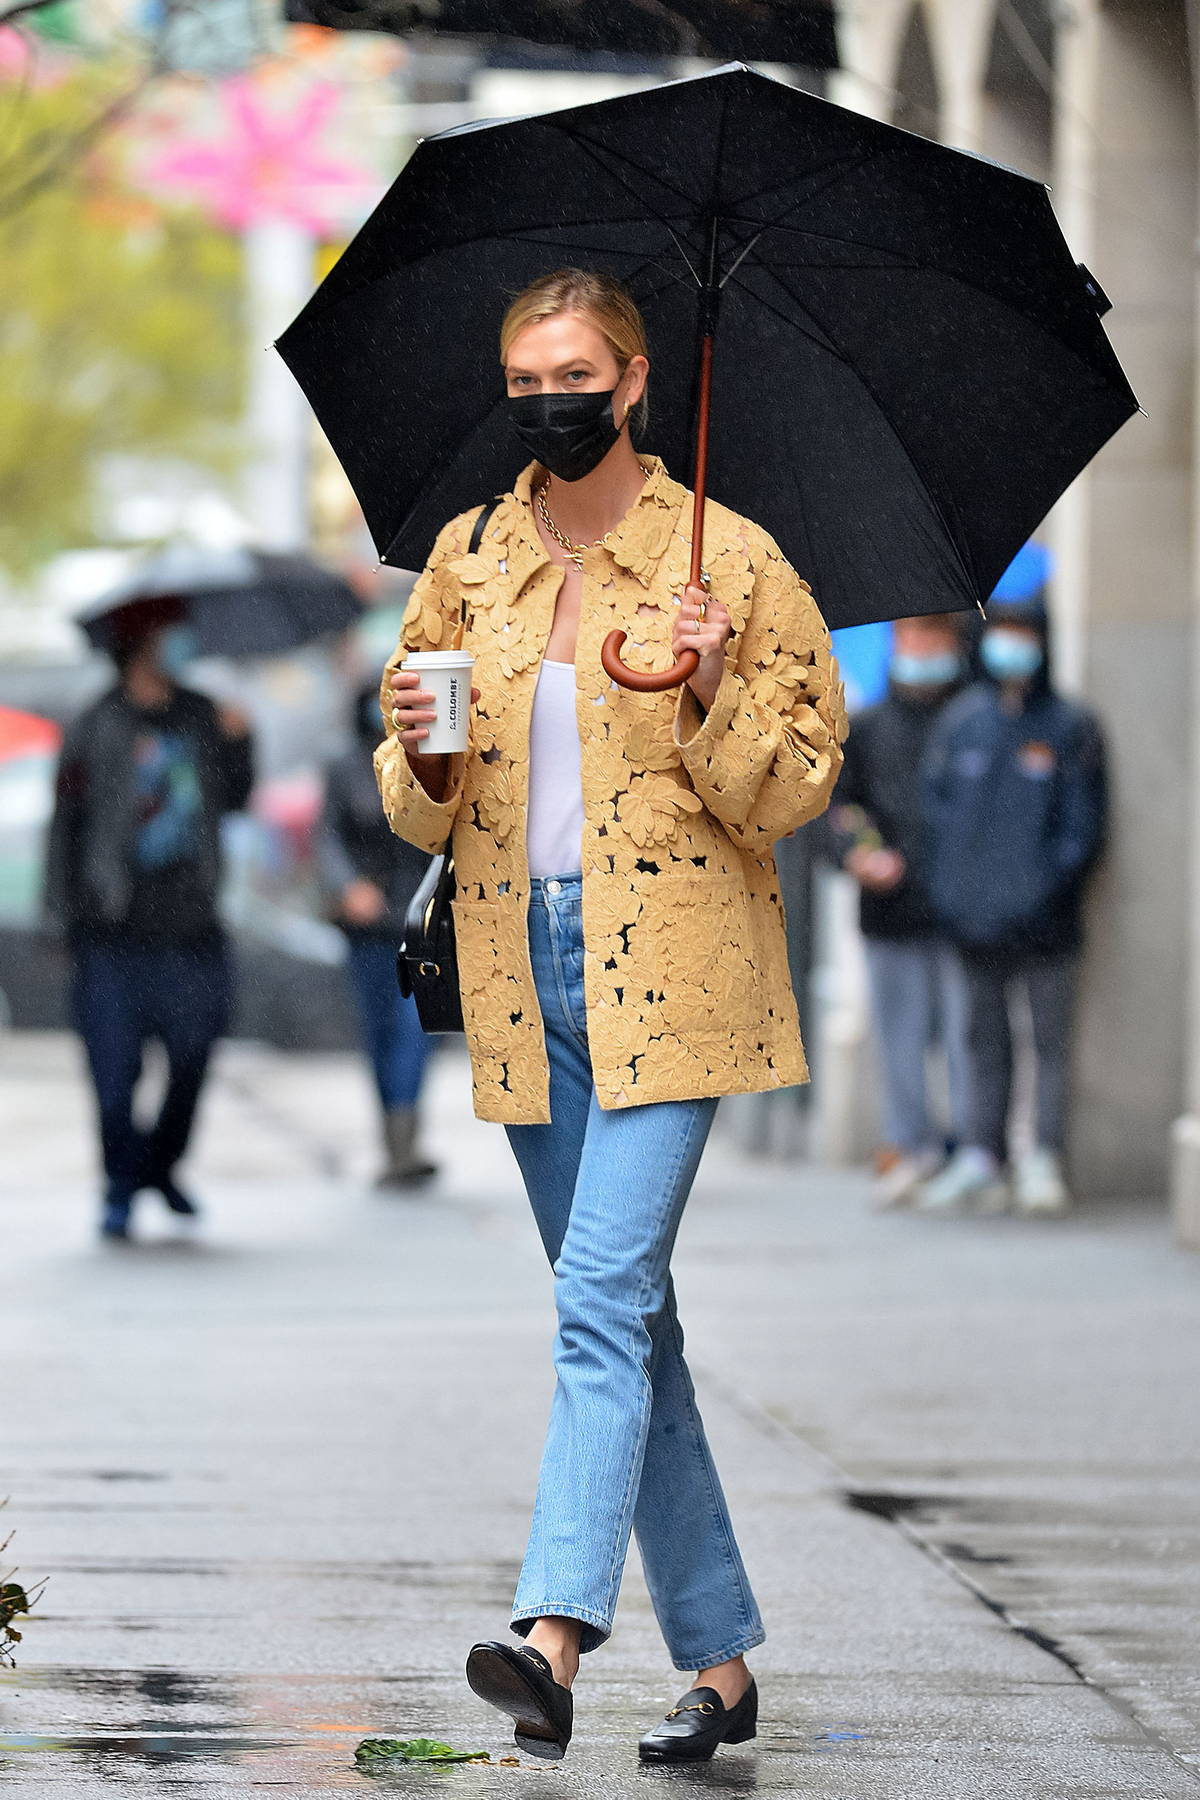 Karlie Kloss dons a stylish floral jacket as she steps out in the rain for a coffee in New York City